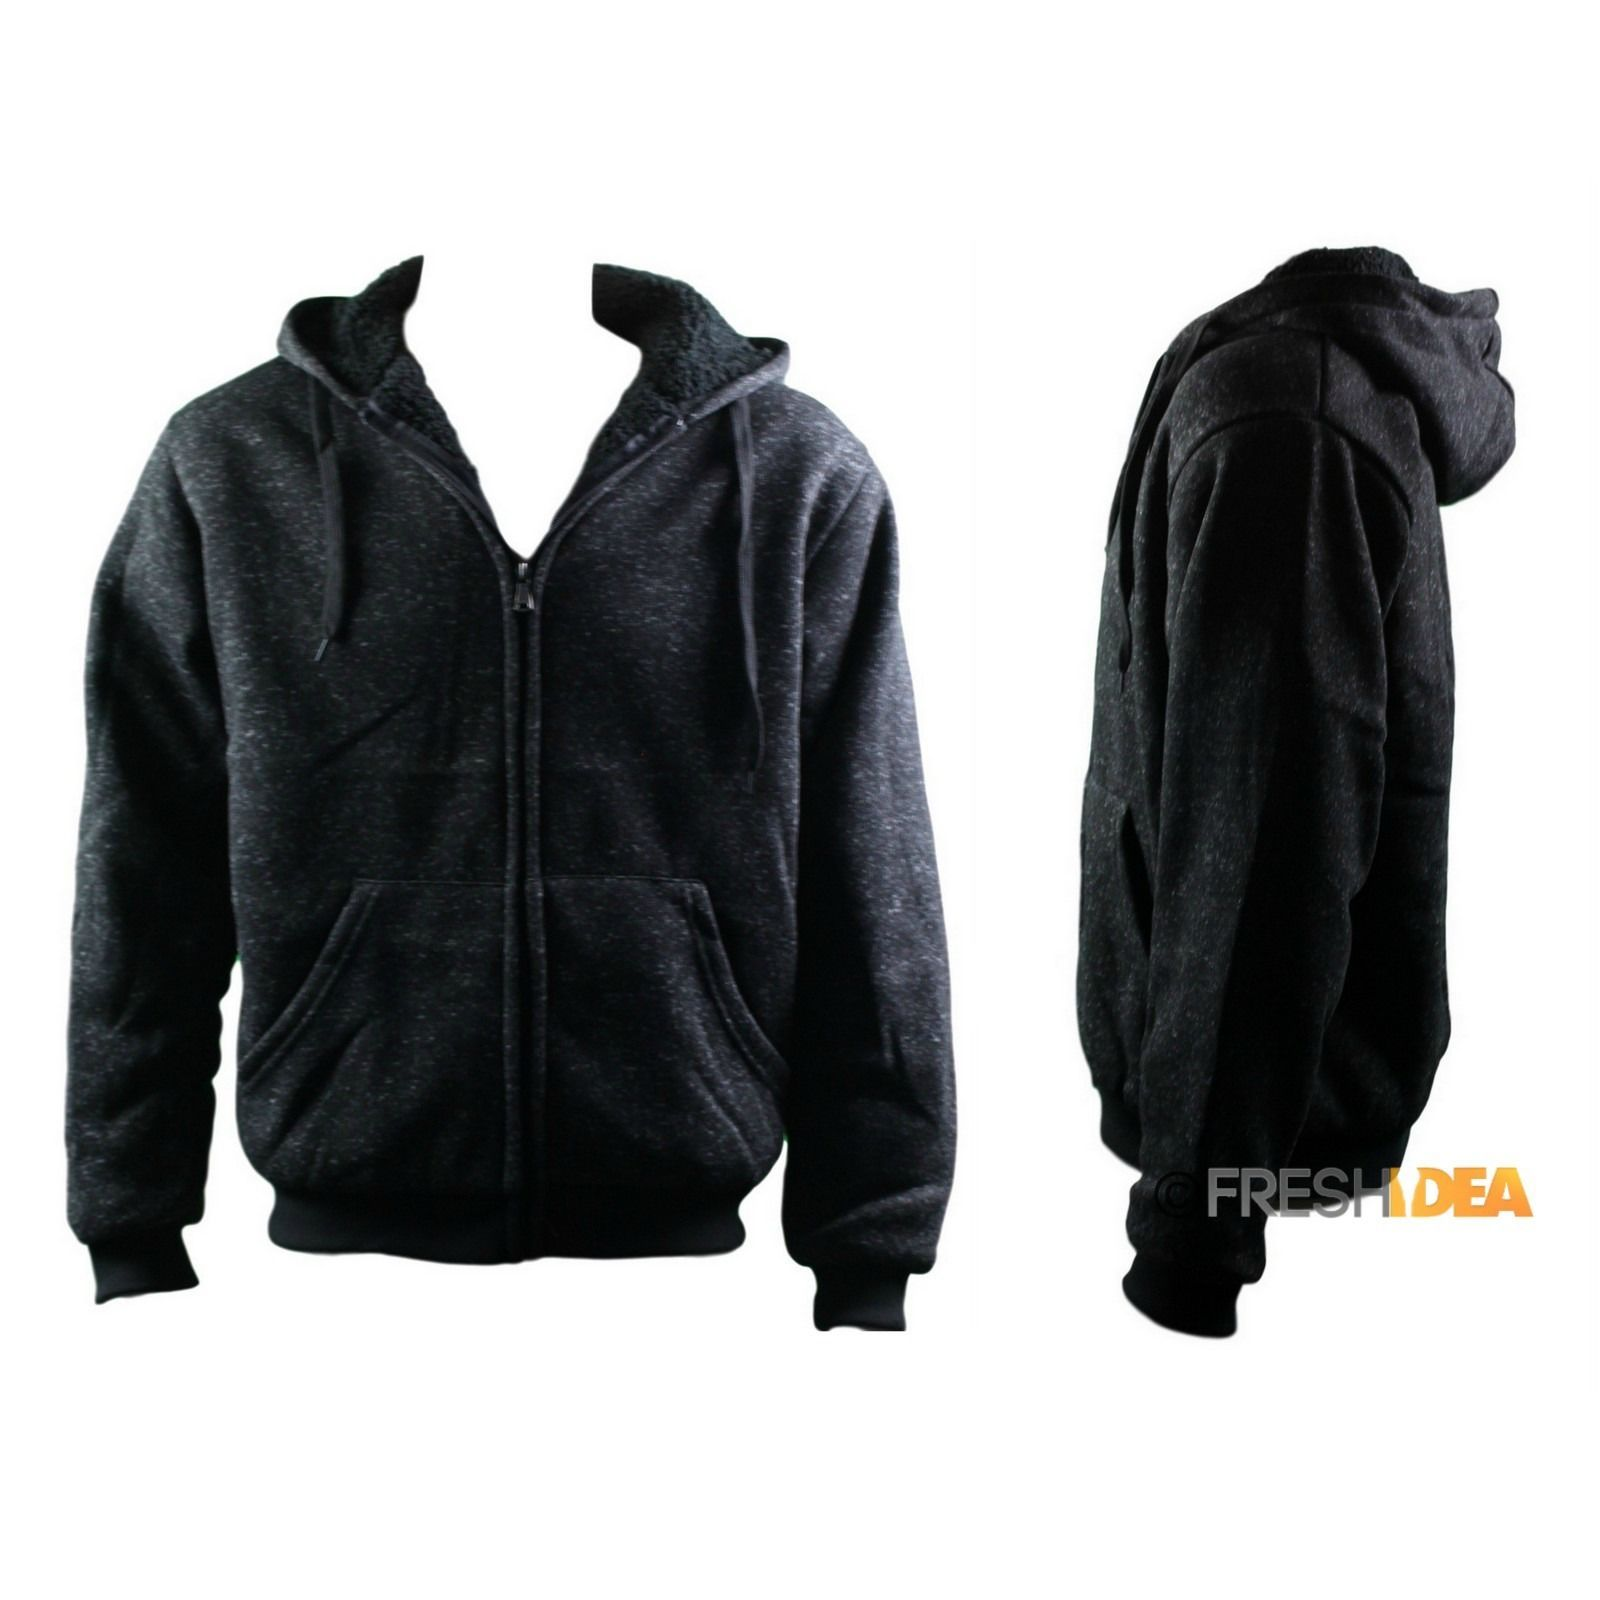 Adult-Unisex-Men-039-s-Zip-Up-Hoodie-w-Fleece-Hooded-Jacket-Jumper-Sweater-Look thumbnail 4